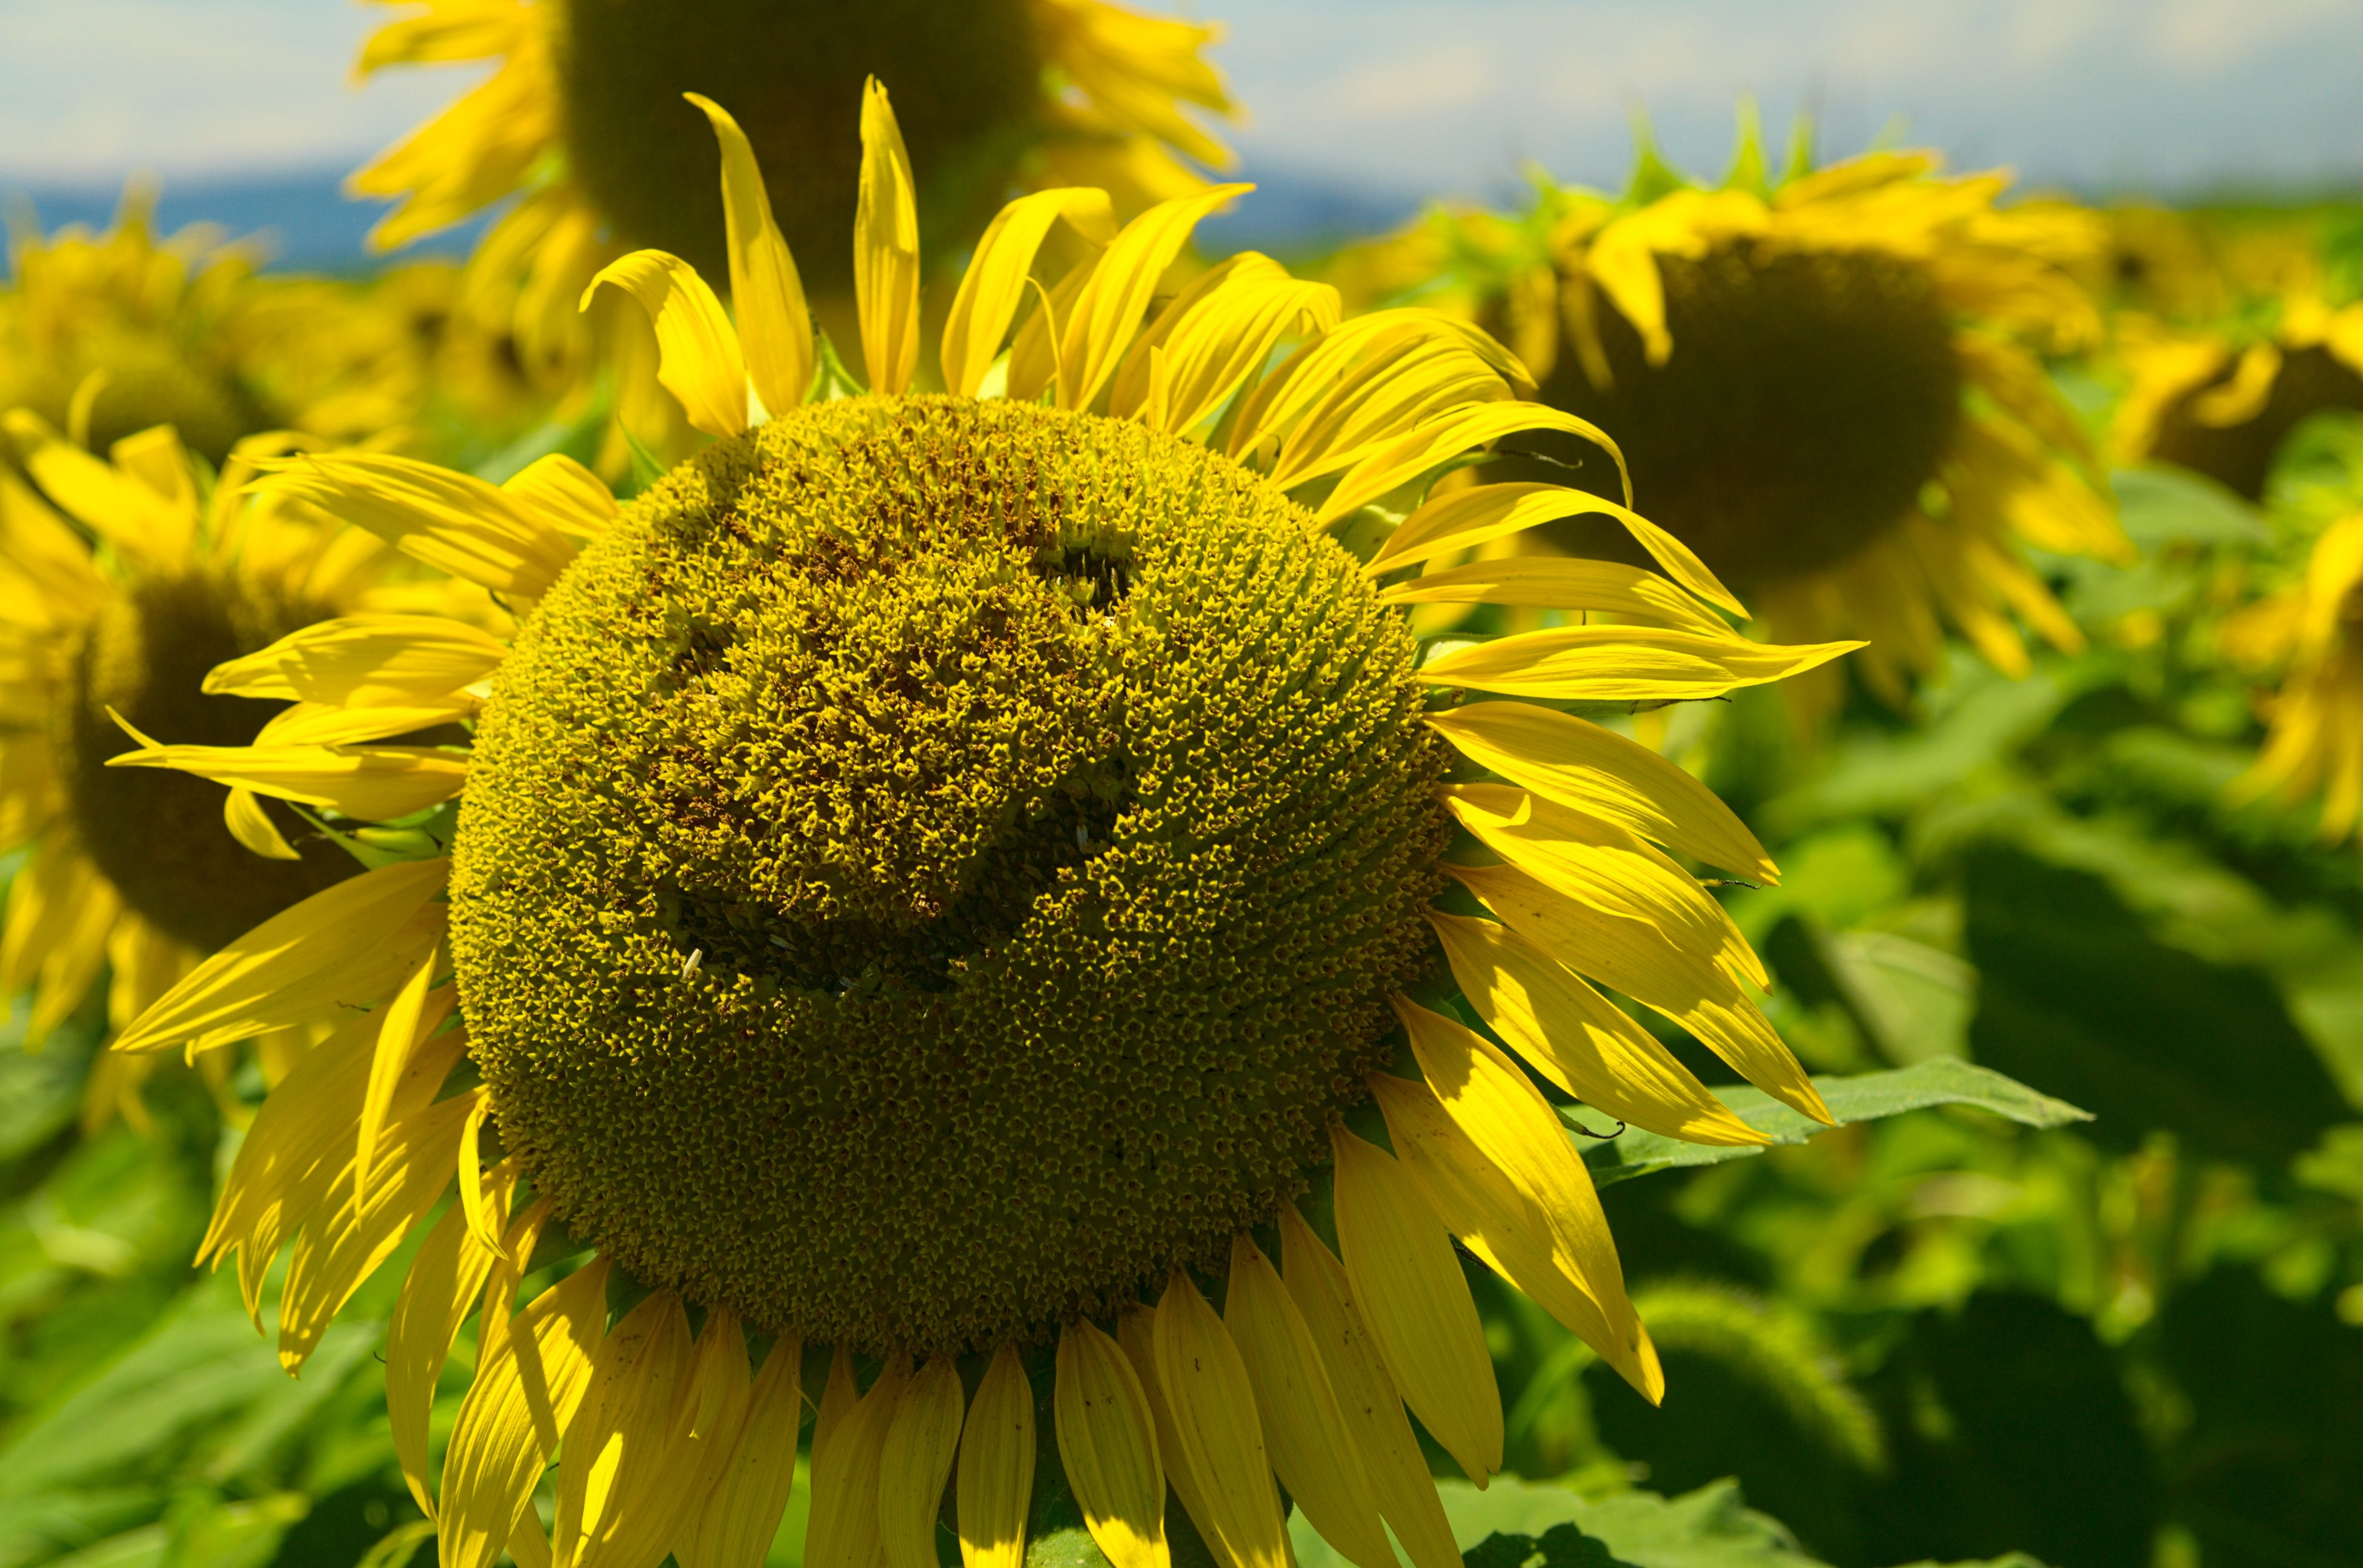 flower, yellow, freshness, growth, sunflower, close-up, focus on foreground, flower head, fragility, beauty in nature, plant, petal, nature, blooming, pollen, field, outdoors, day, in bloom, no people